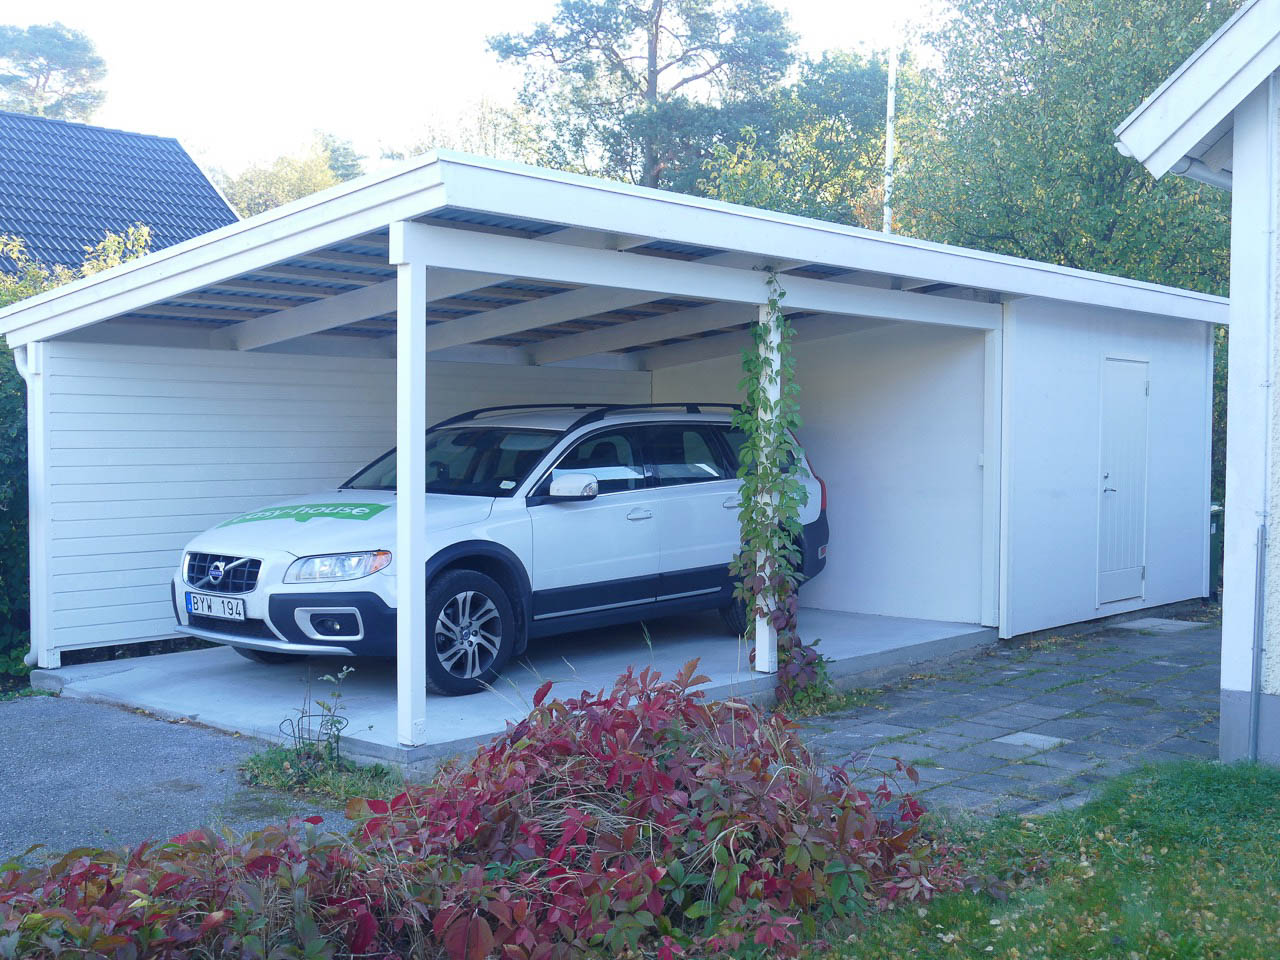 easy-house-specialhus-carport-stockholm.jpg